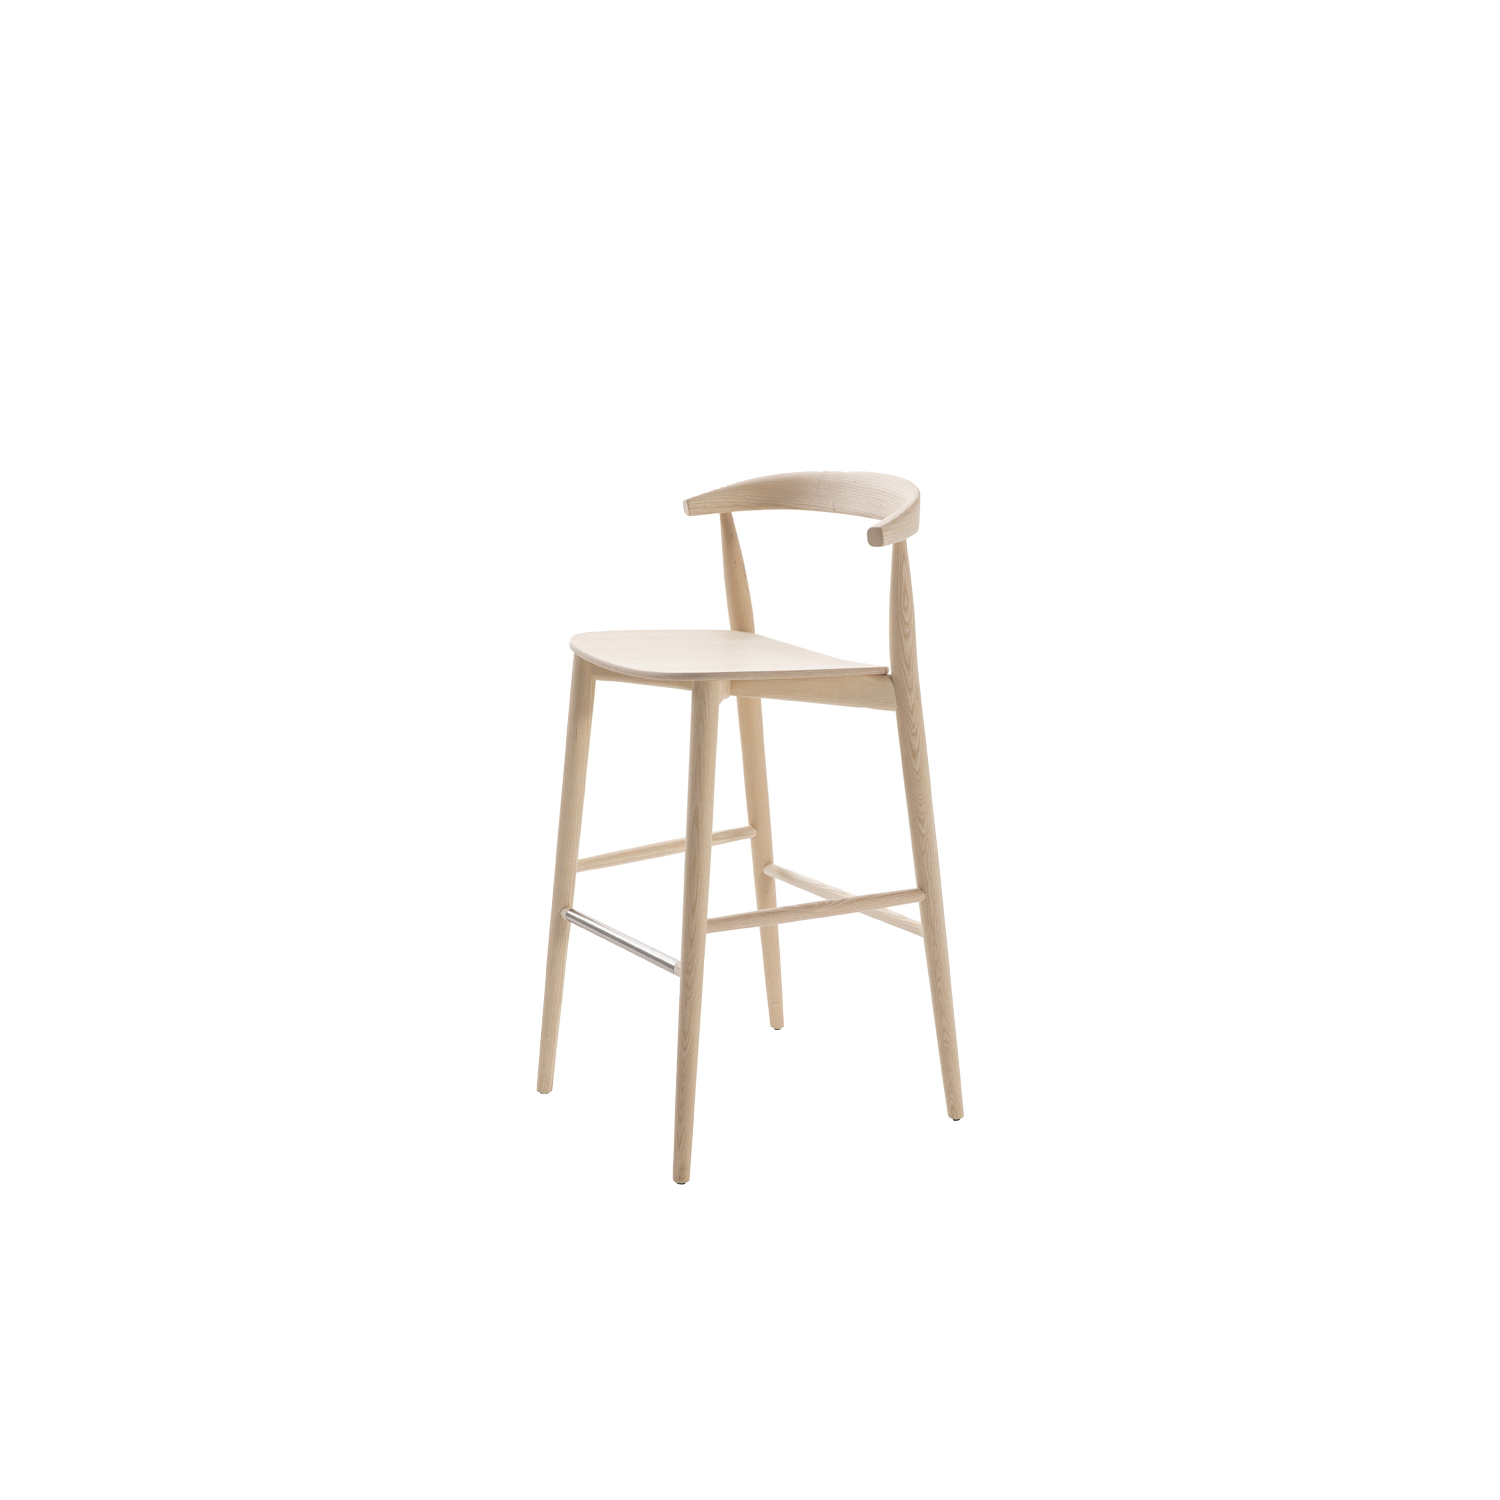 Newood Light High Stool - BrogliatoTraverso studio has continued to amplify its celebrated family, inspired by classic Windsor chairs, this time in two ultra-light versions: Newood Light chair and Newood Light stool. The Newood Light chair reflects all of the characteristics of the original design, but is much lighter in weight, due to the elimination of the 8 rods in the backrest. Newood Light Stool, a new item for 2019, is available in two heights and is made of solid ash wood, in the same tones as the other seats in the collection. Both the stool and Newood Light chair are available in a bleached ash, wengé stained, black stained oak stained and Shanghai blue stained finish. The seat can be in beech plywood seat, ash veneered in the same colour of the structure, or padded with fixed cover in a selection of fabrics or leathers of the collection. | Matter of Stuff